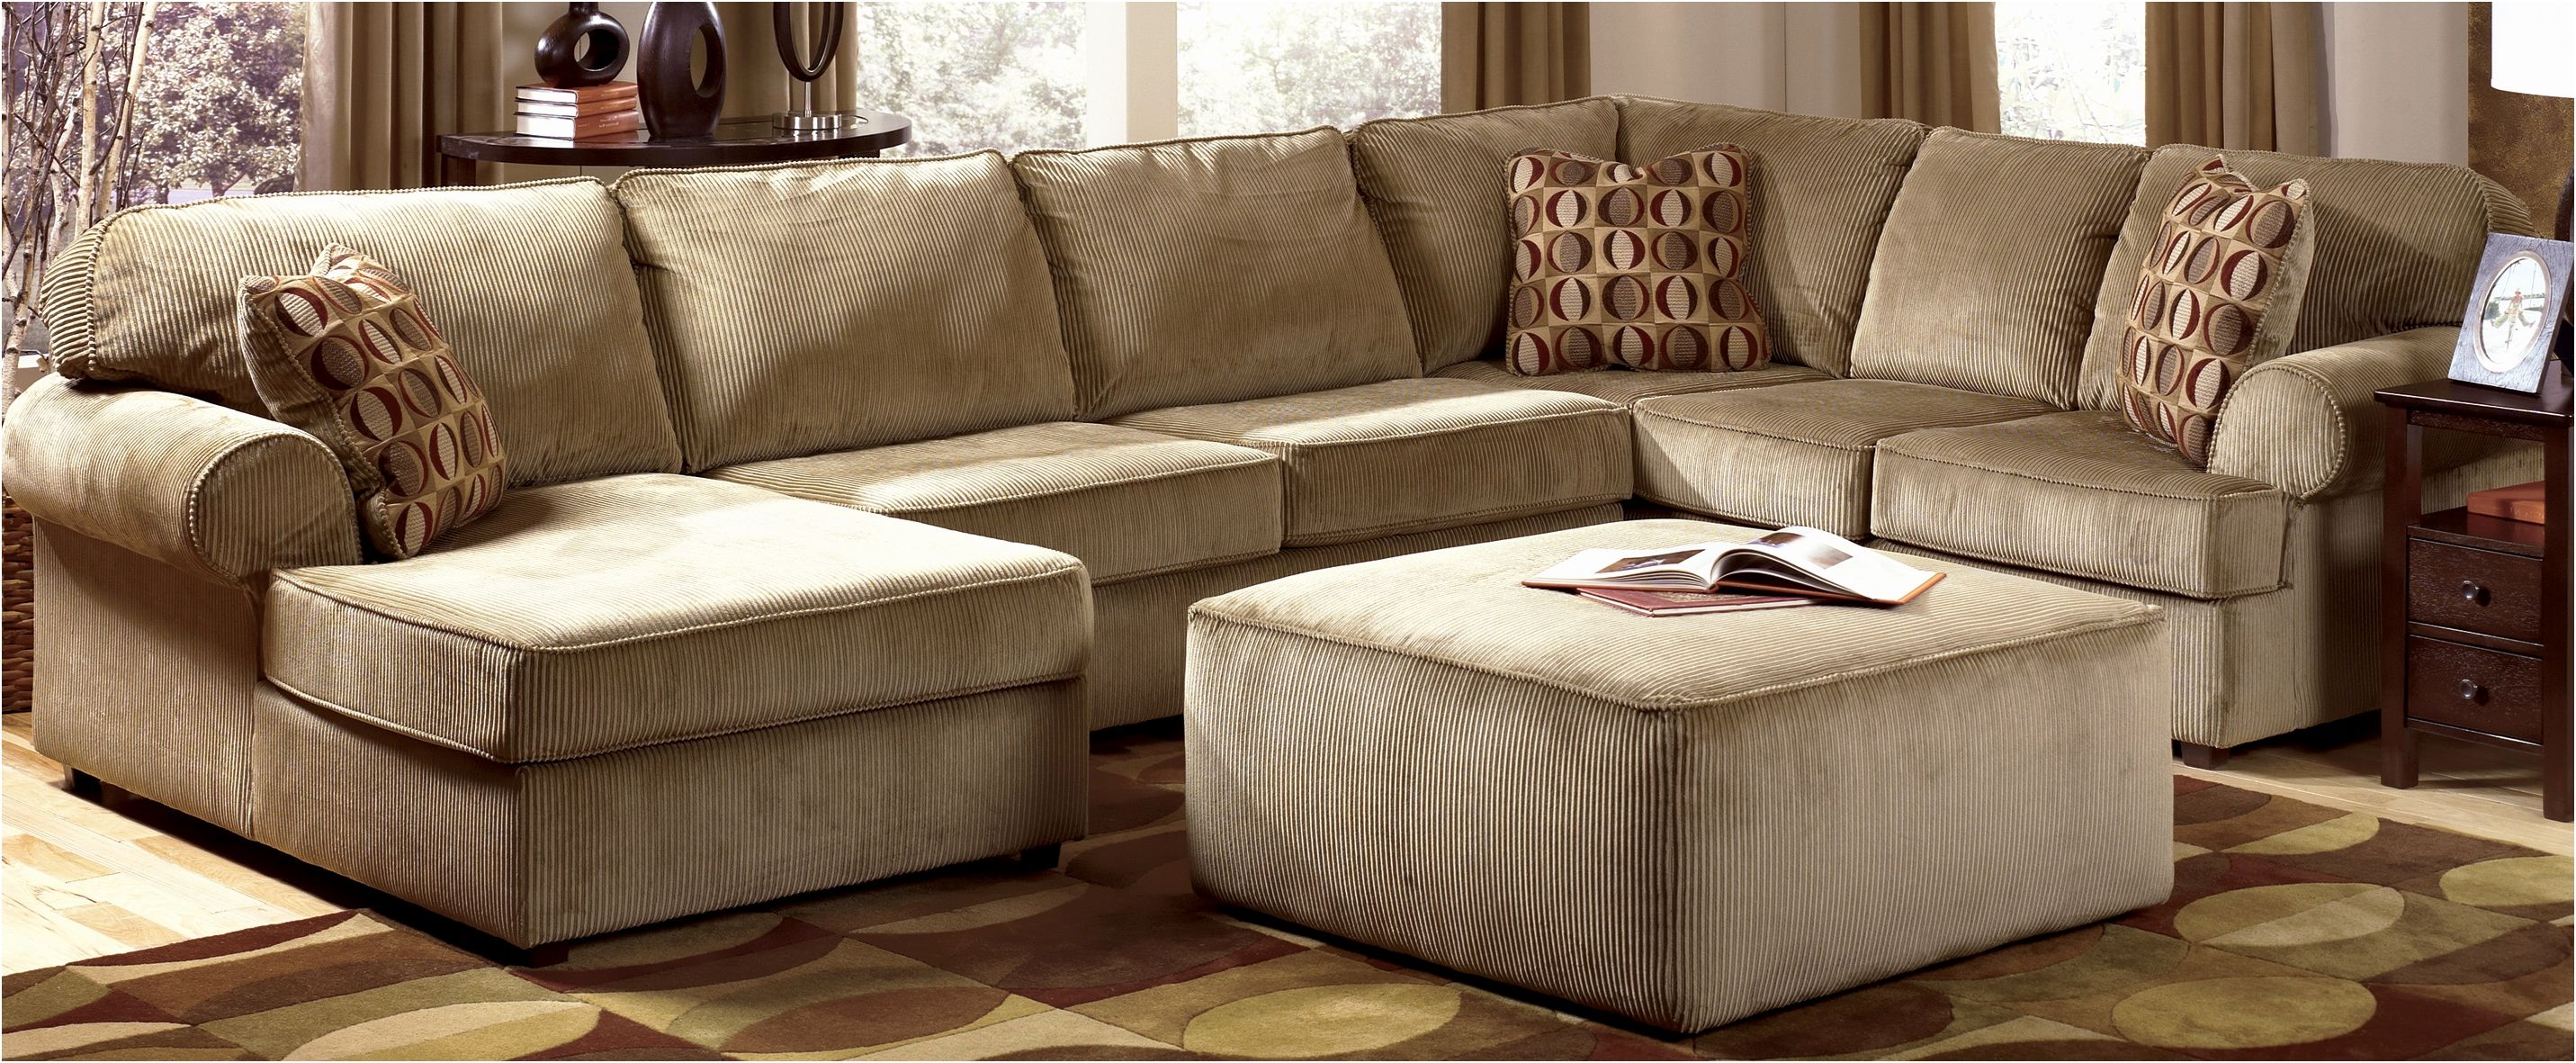 modern cheap reclining sofas design-Fancy Cheap Reclining sofas Image